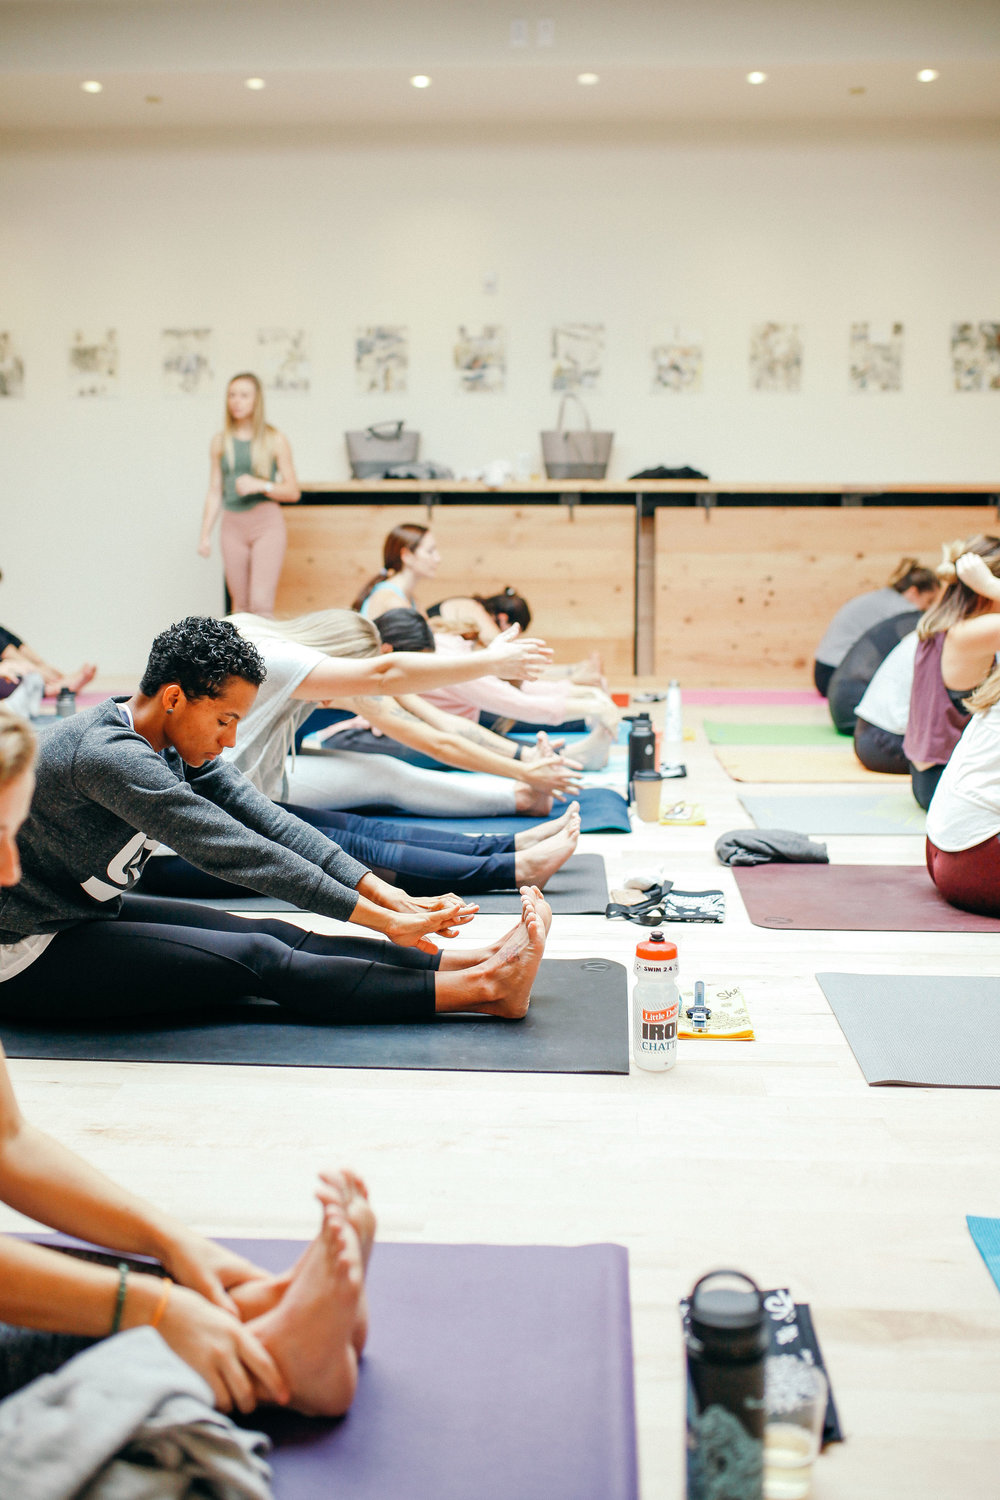 GIRL TALK - a womens sweatworking event dedicated to wellness, connection, and community